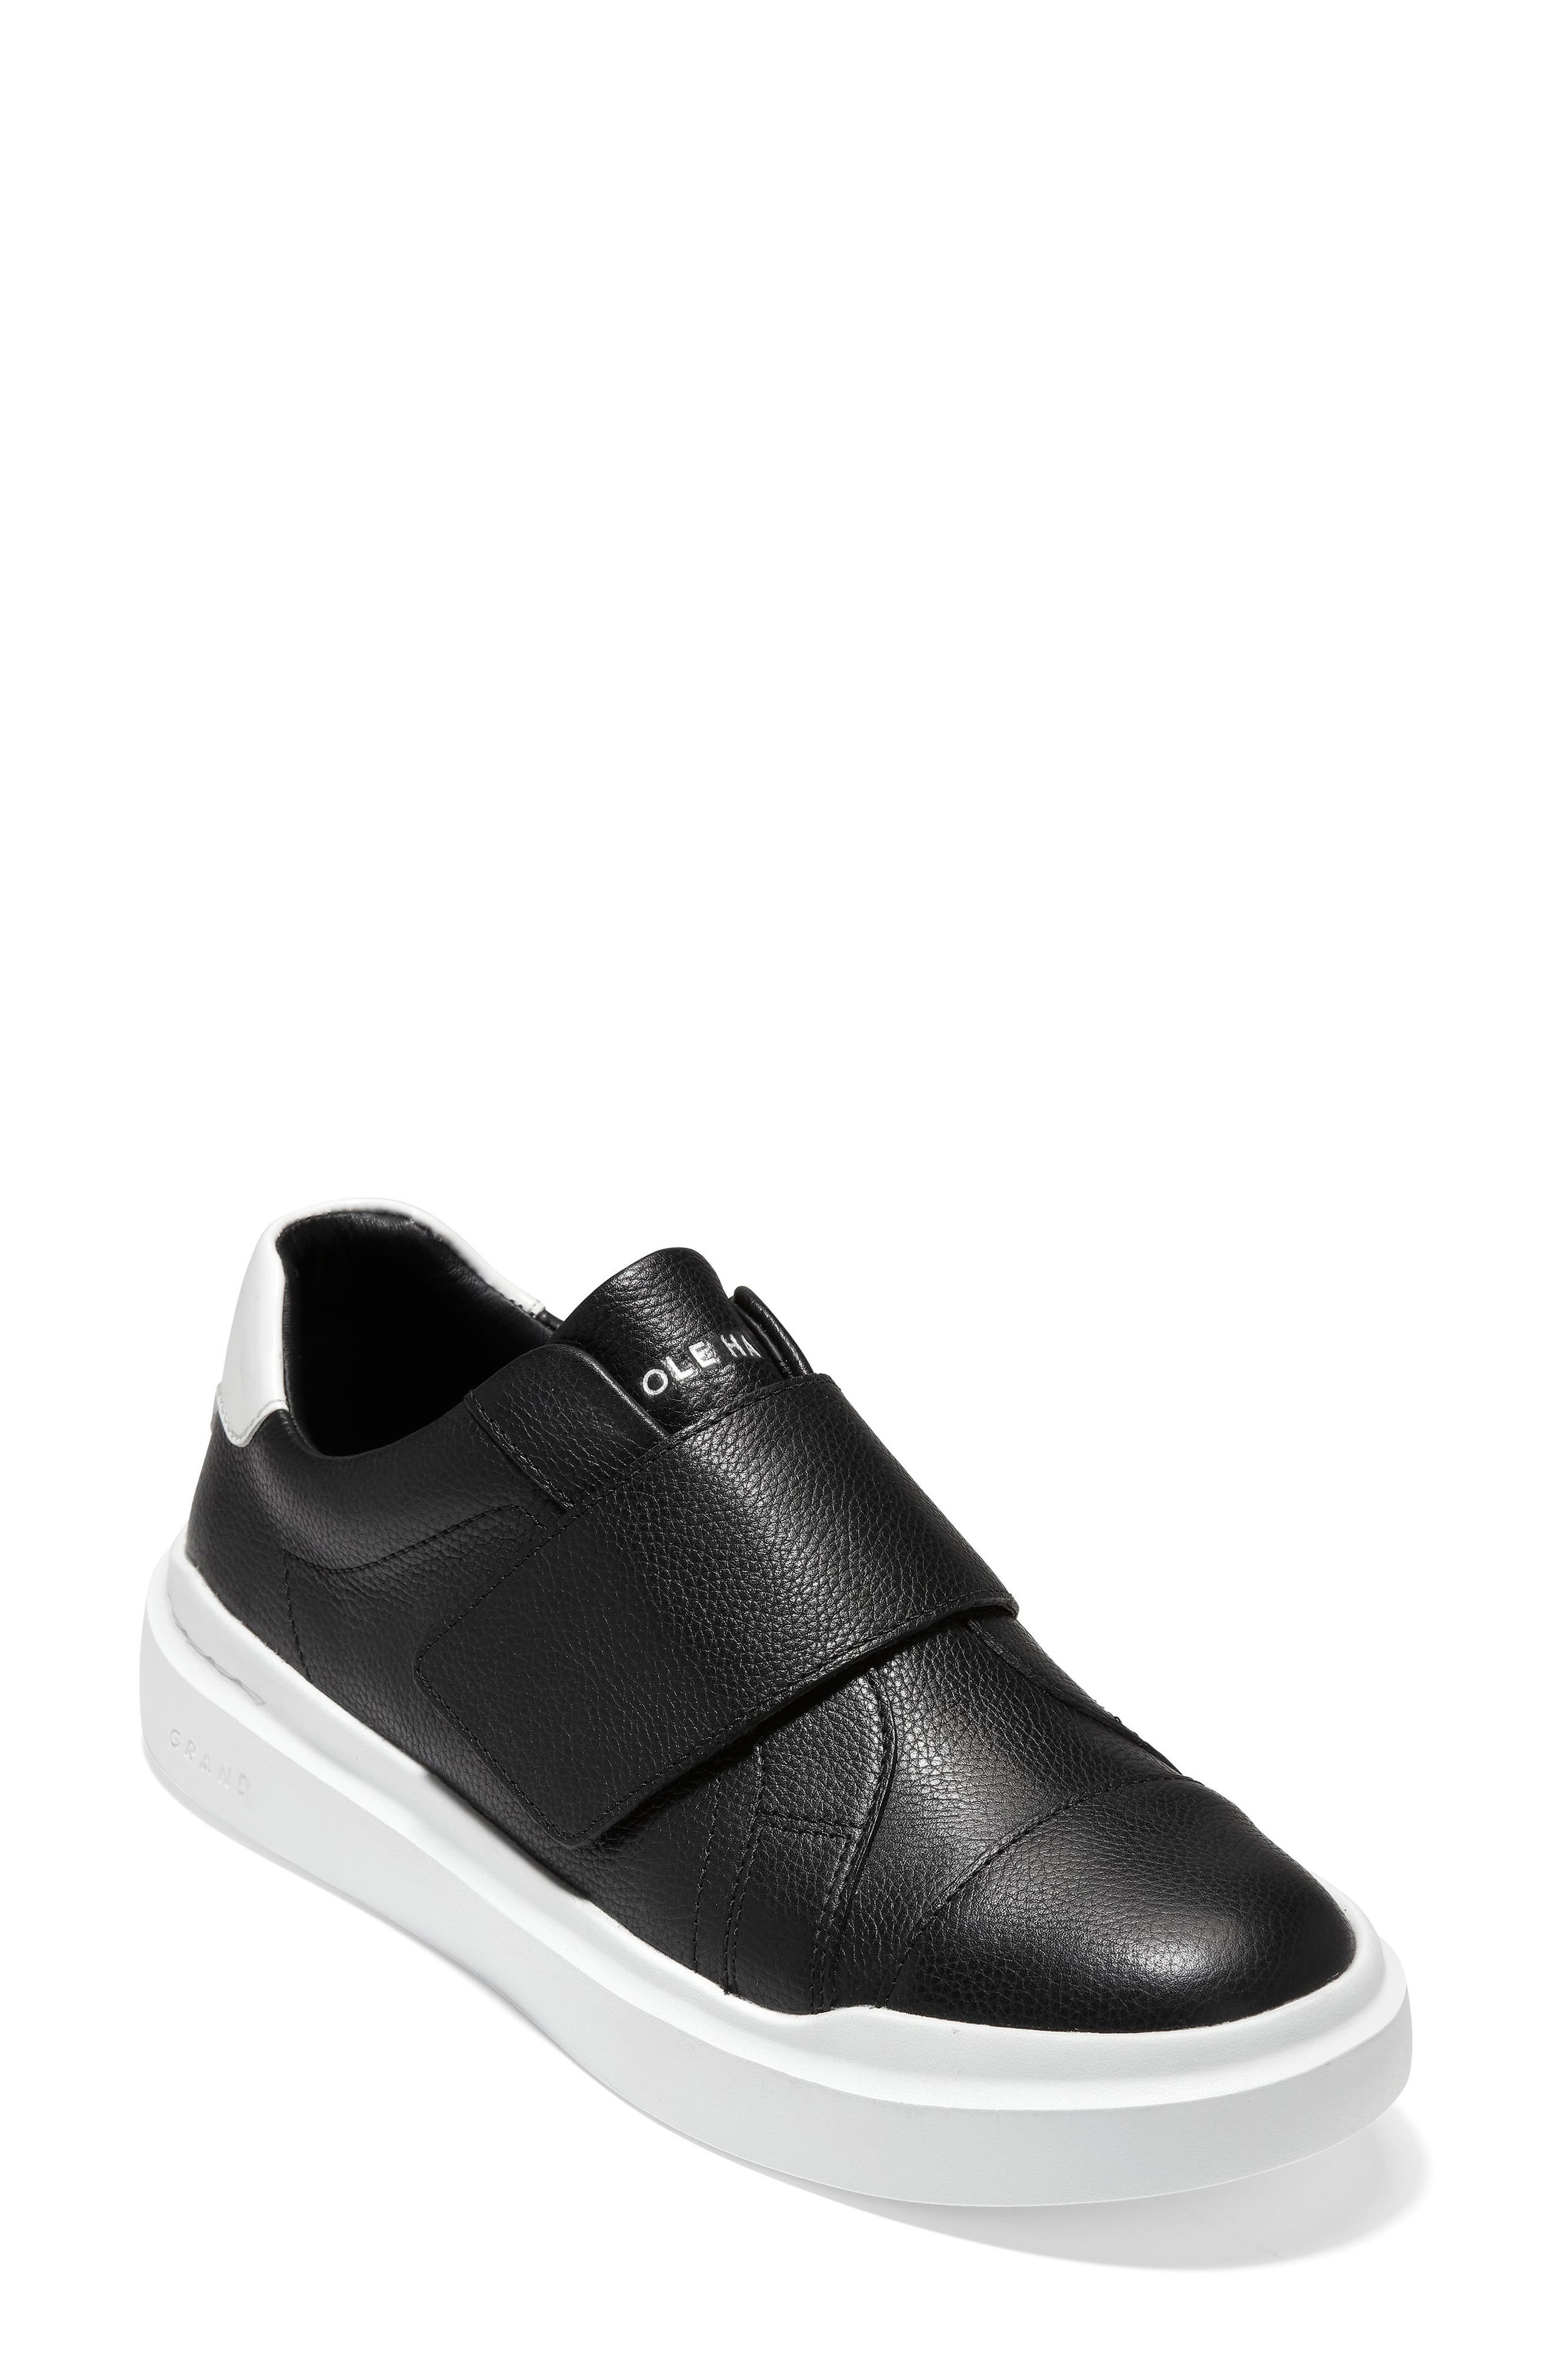 Image of Cole Haan Grandpro Rally Strap Sneaker